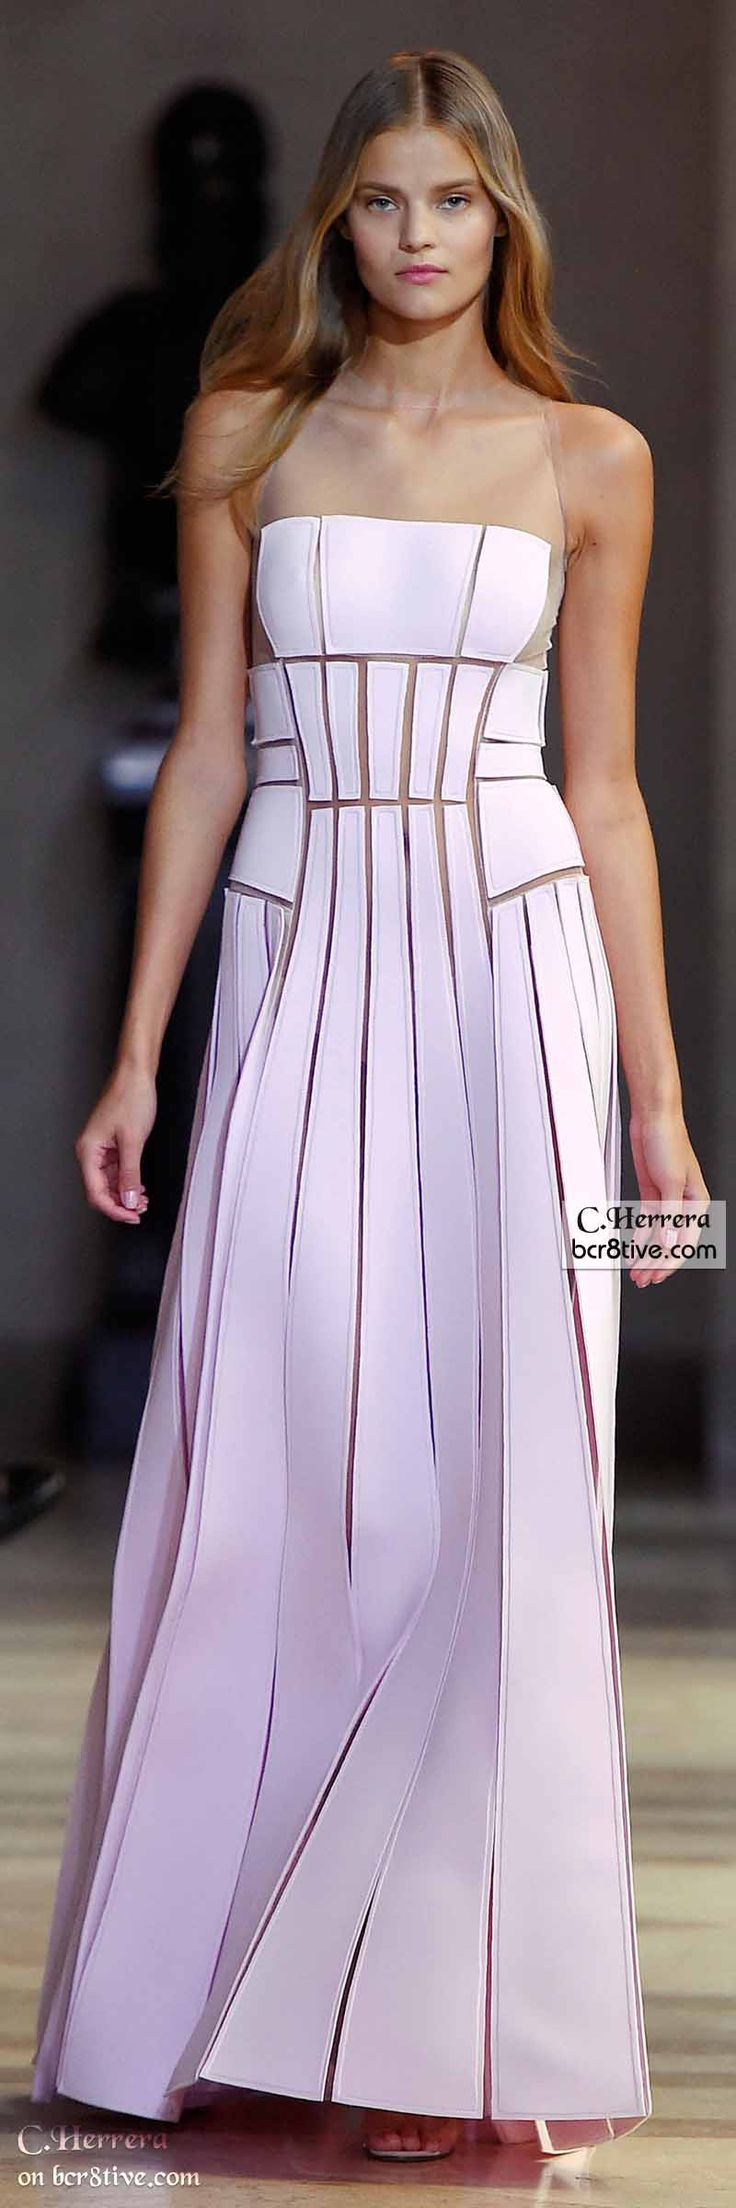 "Carolina Herrera Spring 2016 ""And the LORD said to Moses, ""Go to the people and consecrate them today and tomorrow. Have them wash their clothes."" Exodus 19:10"